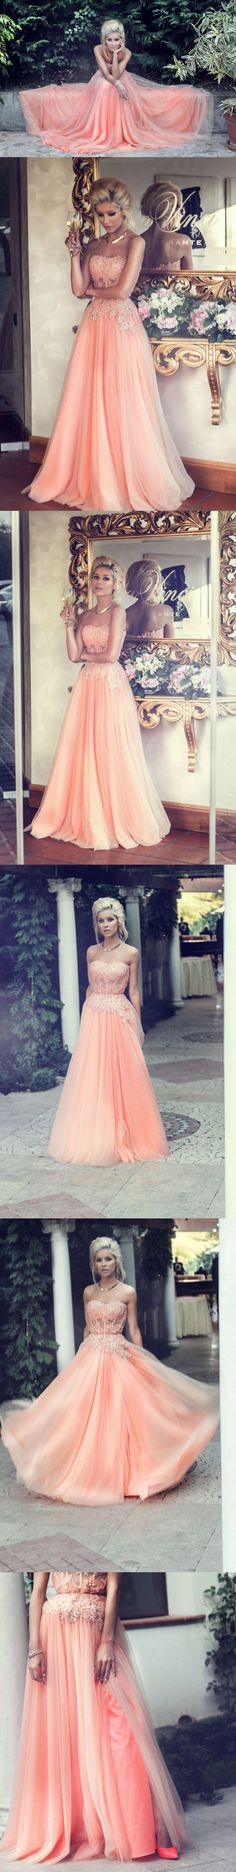 So popular 2015 tulle prom dress, to be focus in your prom, bought from okbridalshop.com